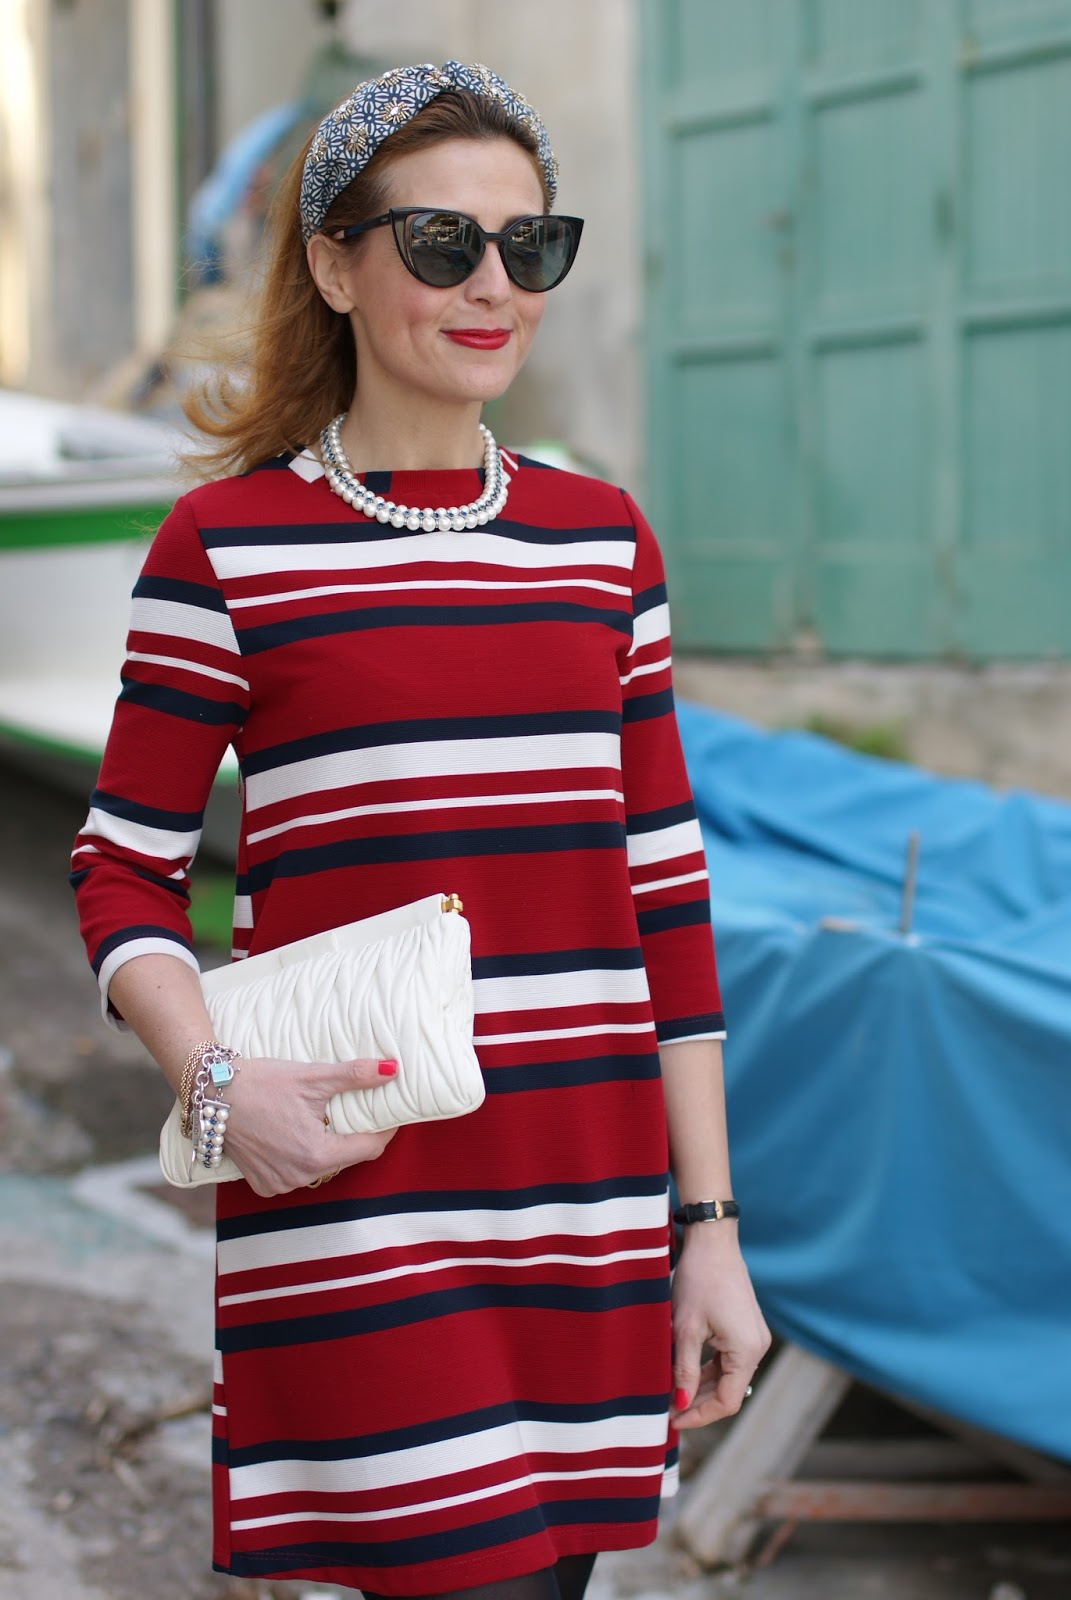 Striped Zara dress, Accessorize headband, Fendi sunglasses, vintage marine look on Fashion and Cookies fashion blog, fashion blogger style